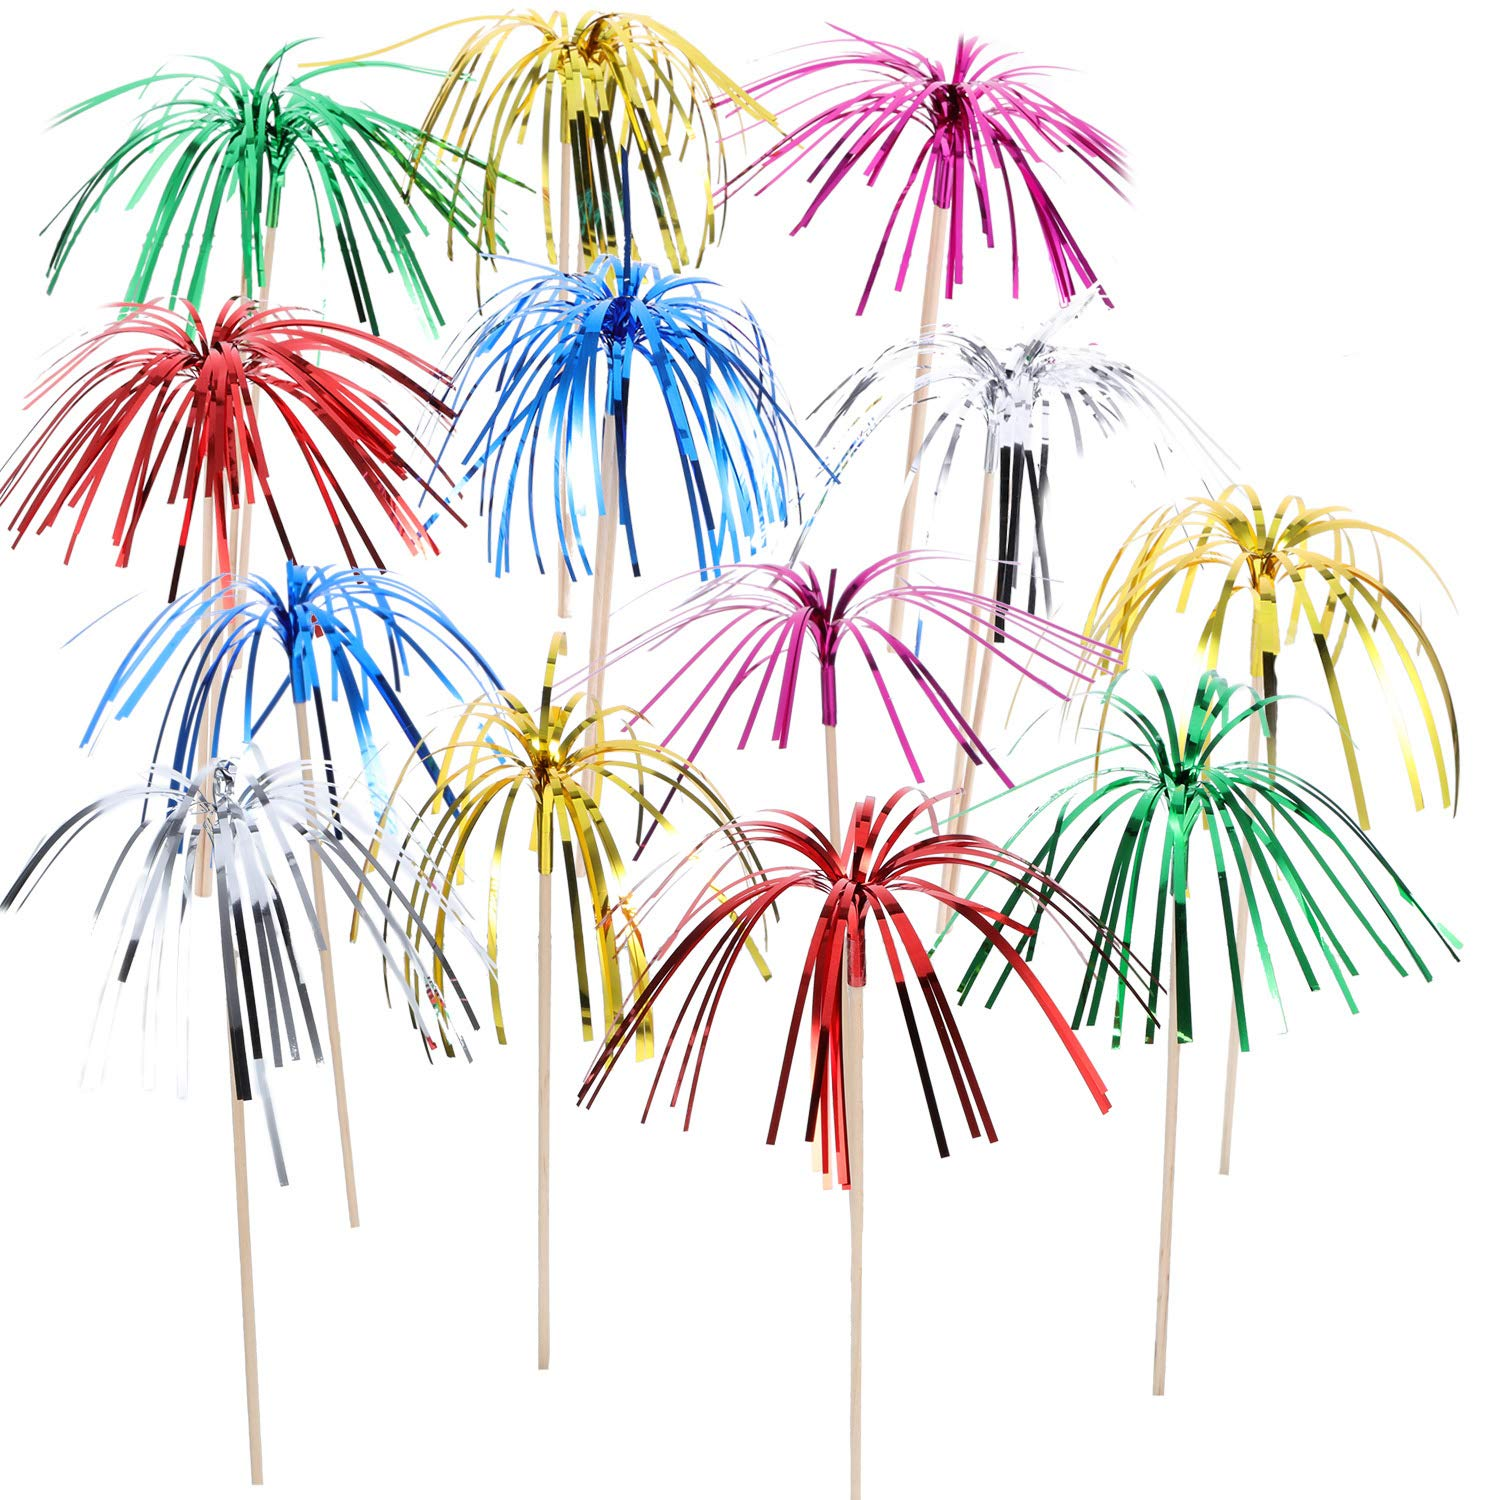 TecUnite 100 Pieces Foil Frill Firework Cupcake Picks Christmas Cupcake Topper 9 Inch Coconut Tree Shape, Food Picks Supplies Party Decoration (Multicolored)